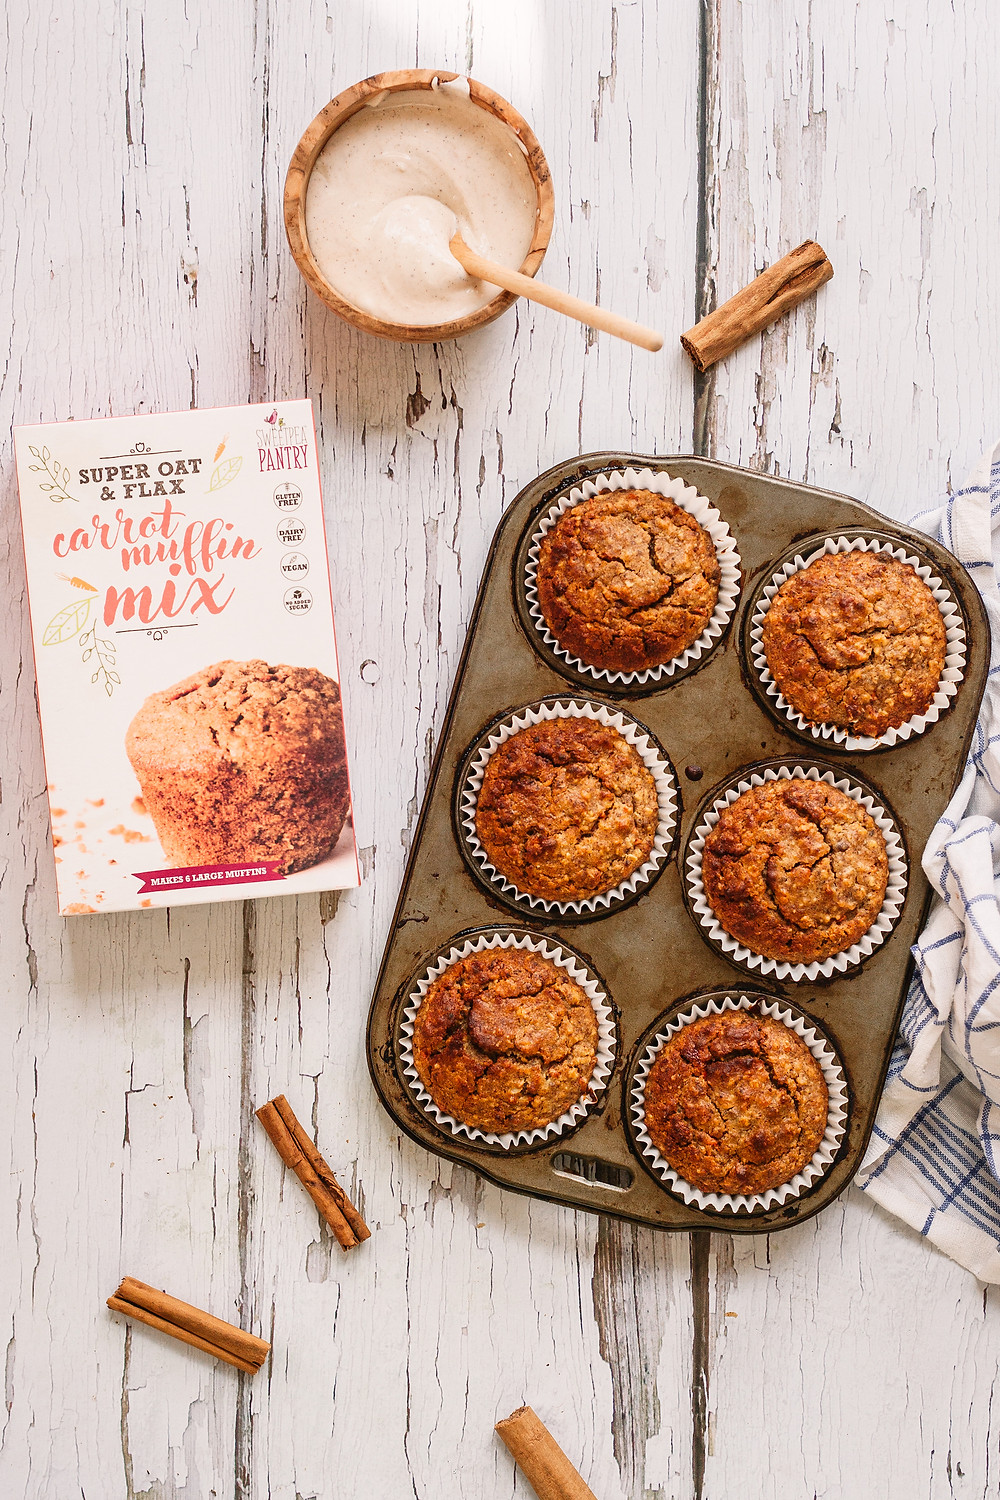 Healthy Muffins to make at home